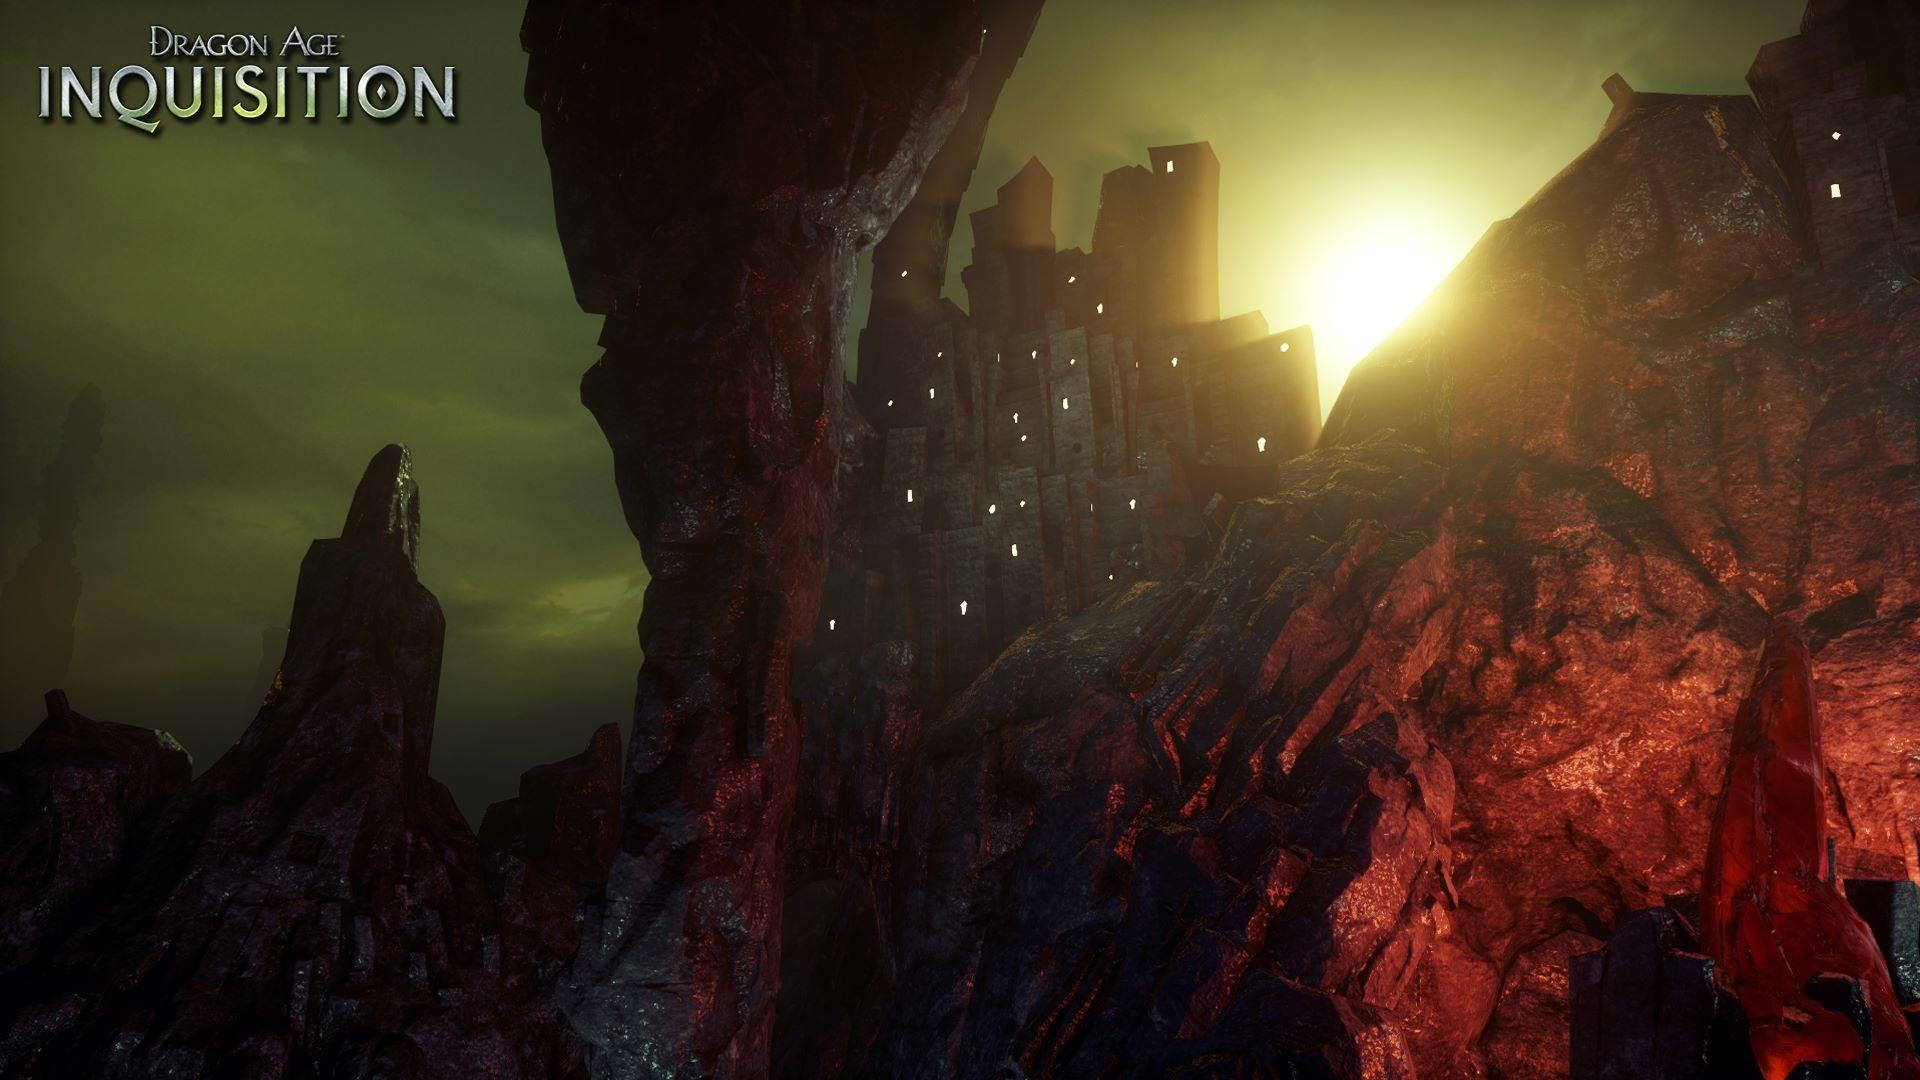 These Dragon Age Inquisition screens show a dark treacherous world VG247